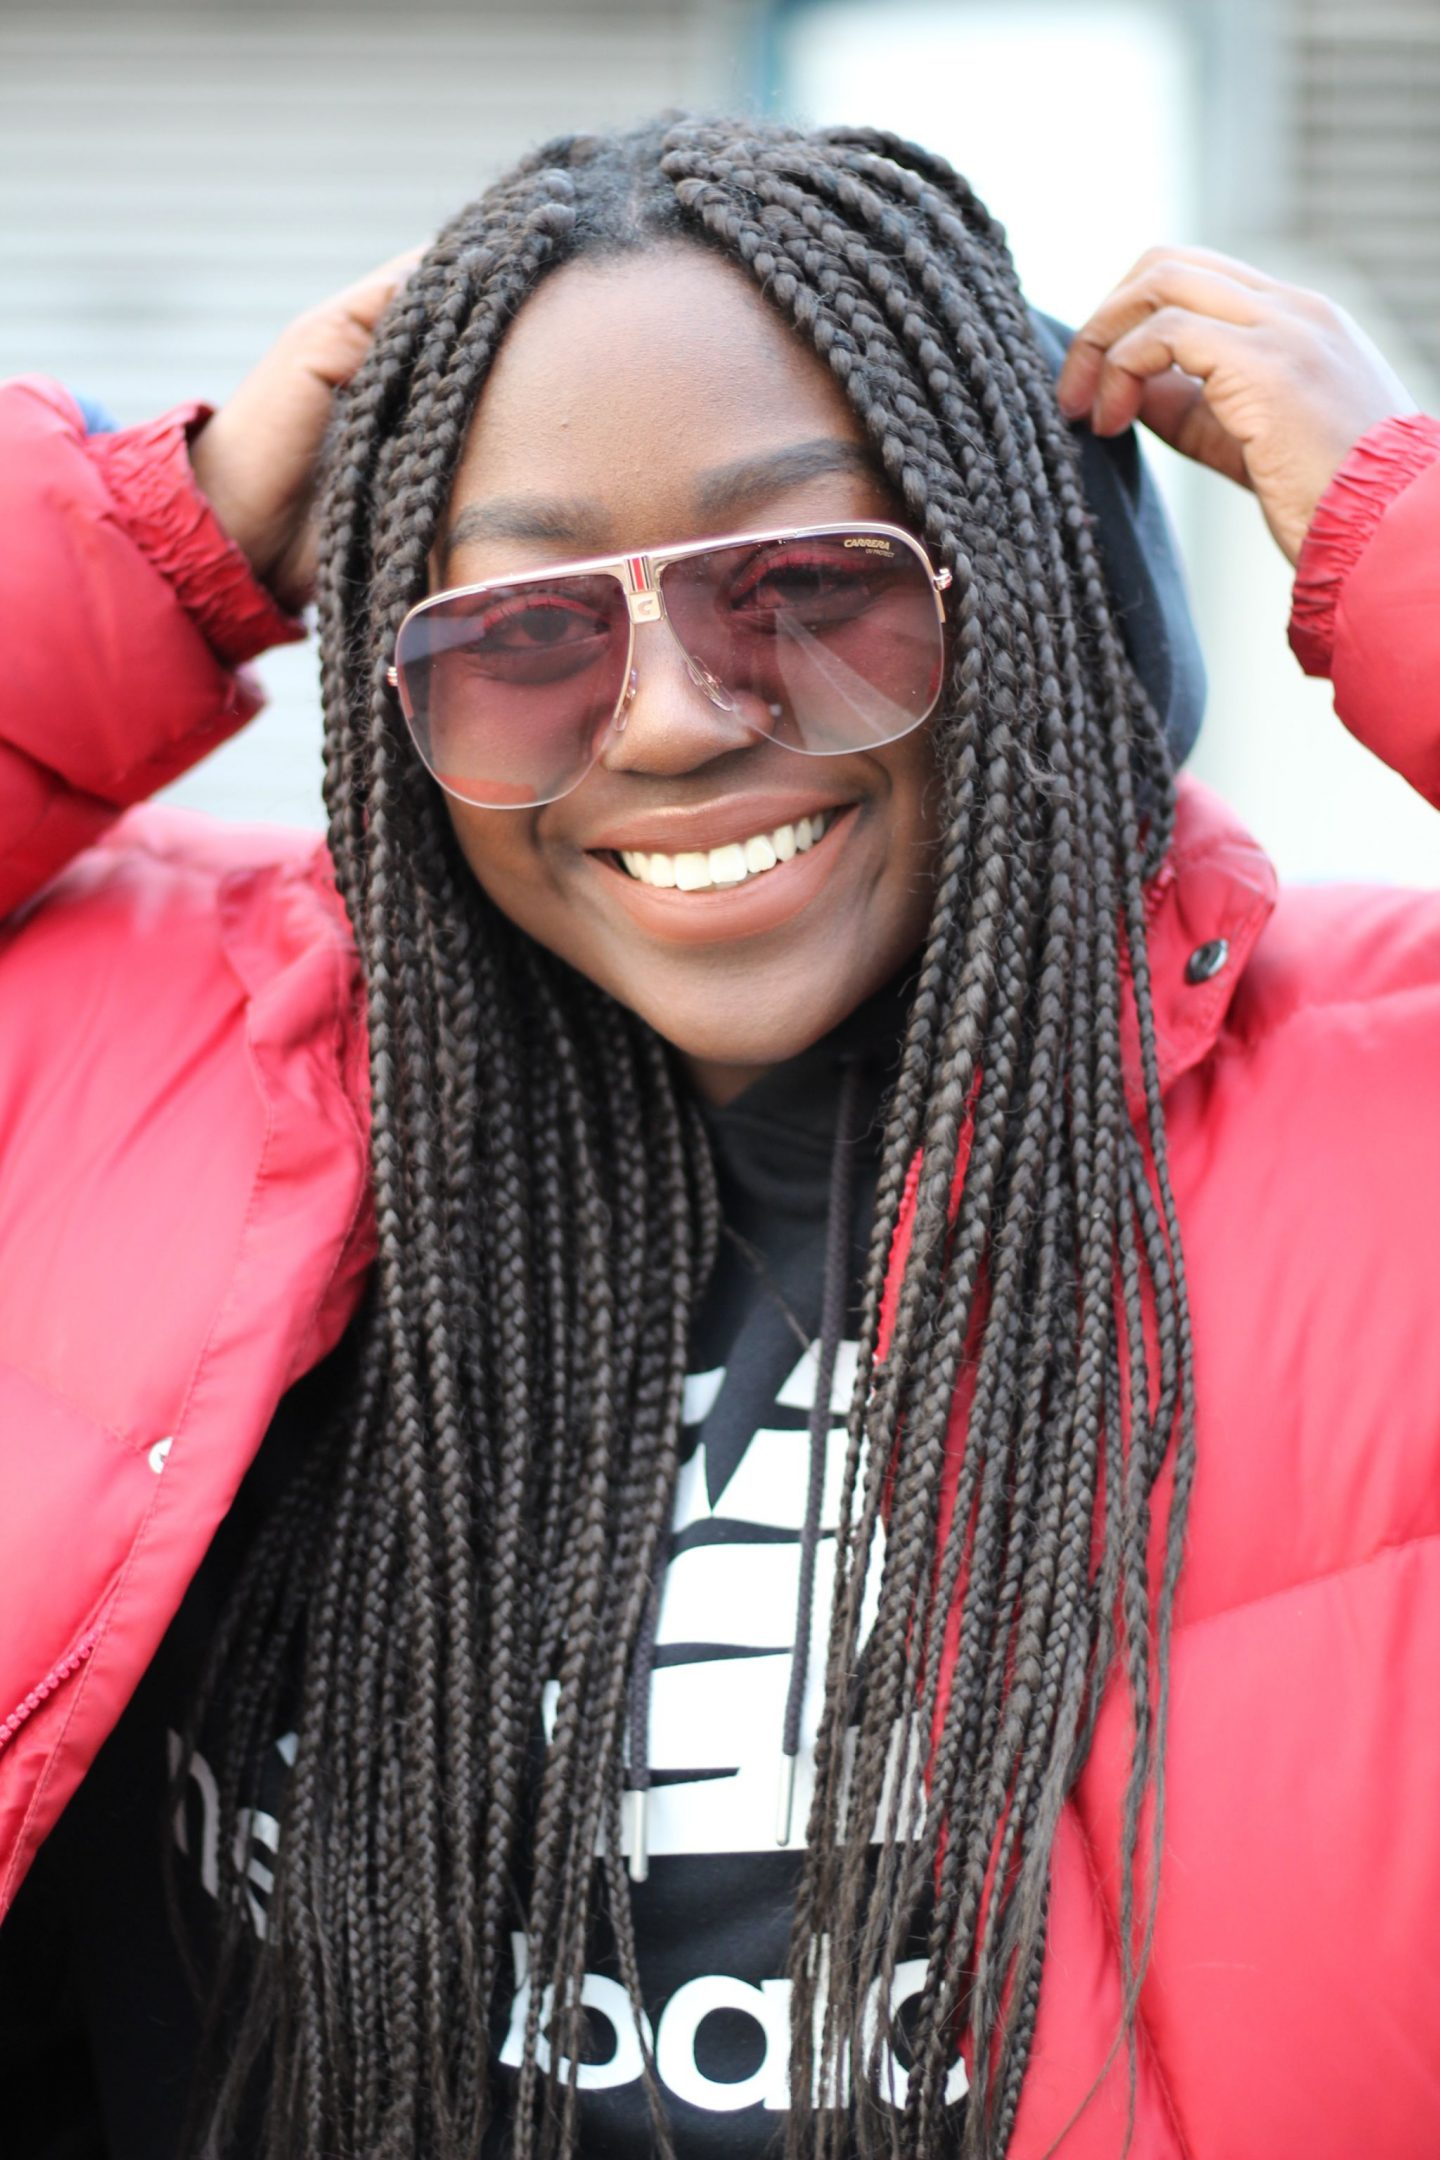 streetwear_chic_carrera_sunglasses_lois_opoku_fashion_blog_style_berlin_lisforlois_2